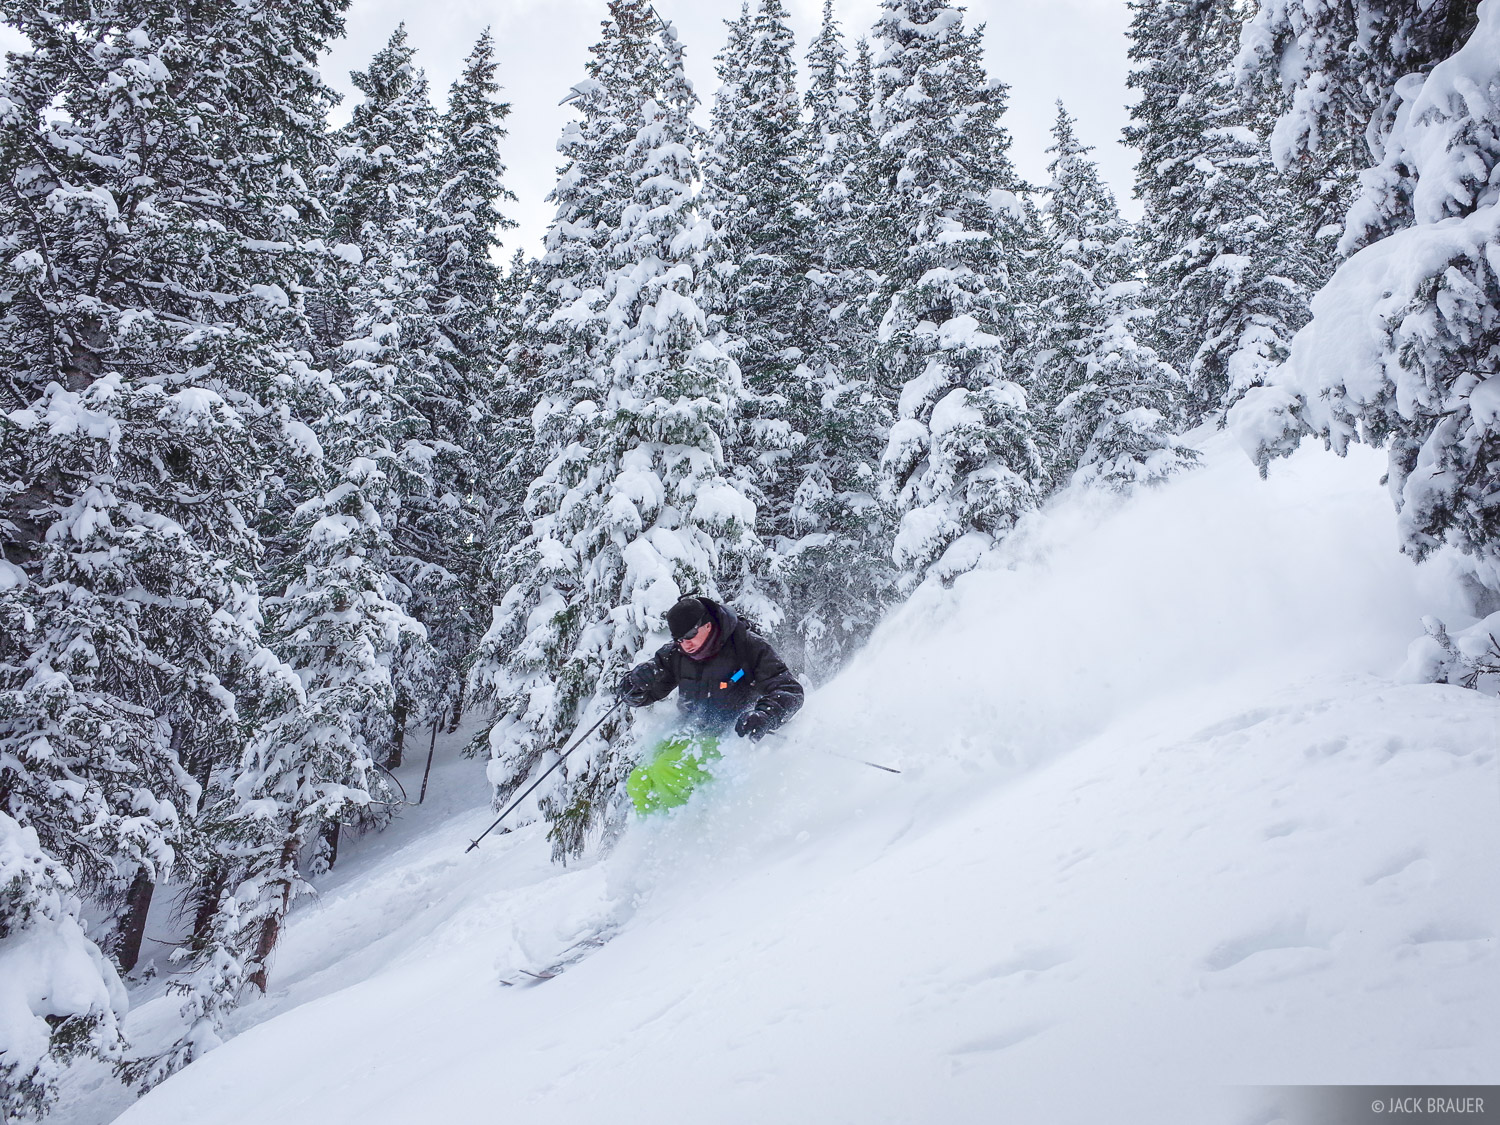 Scott Kennett, skiing, San Juan Mountains, Colorado, photo